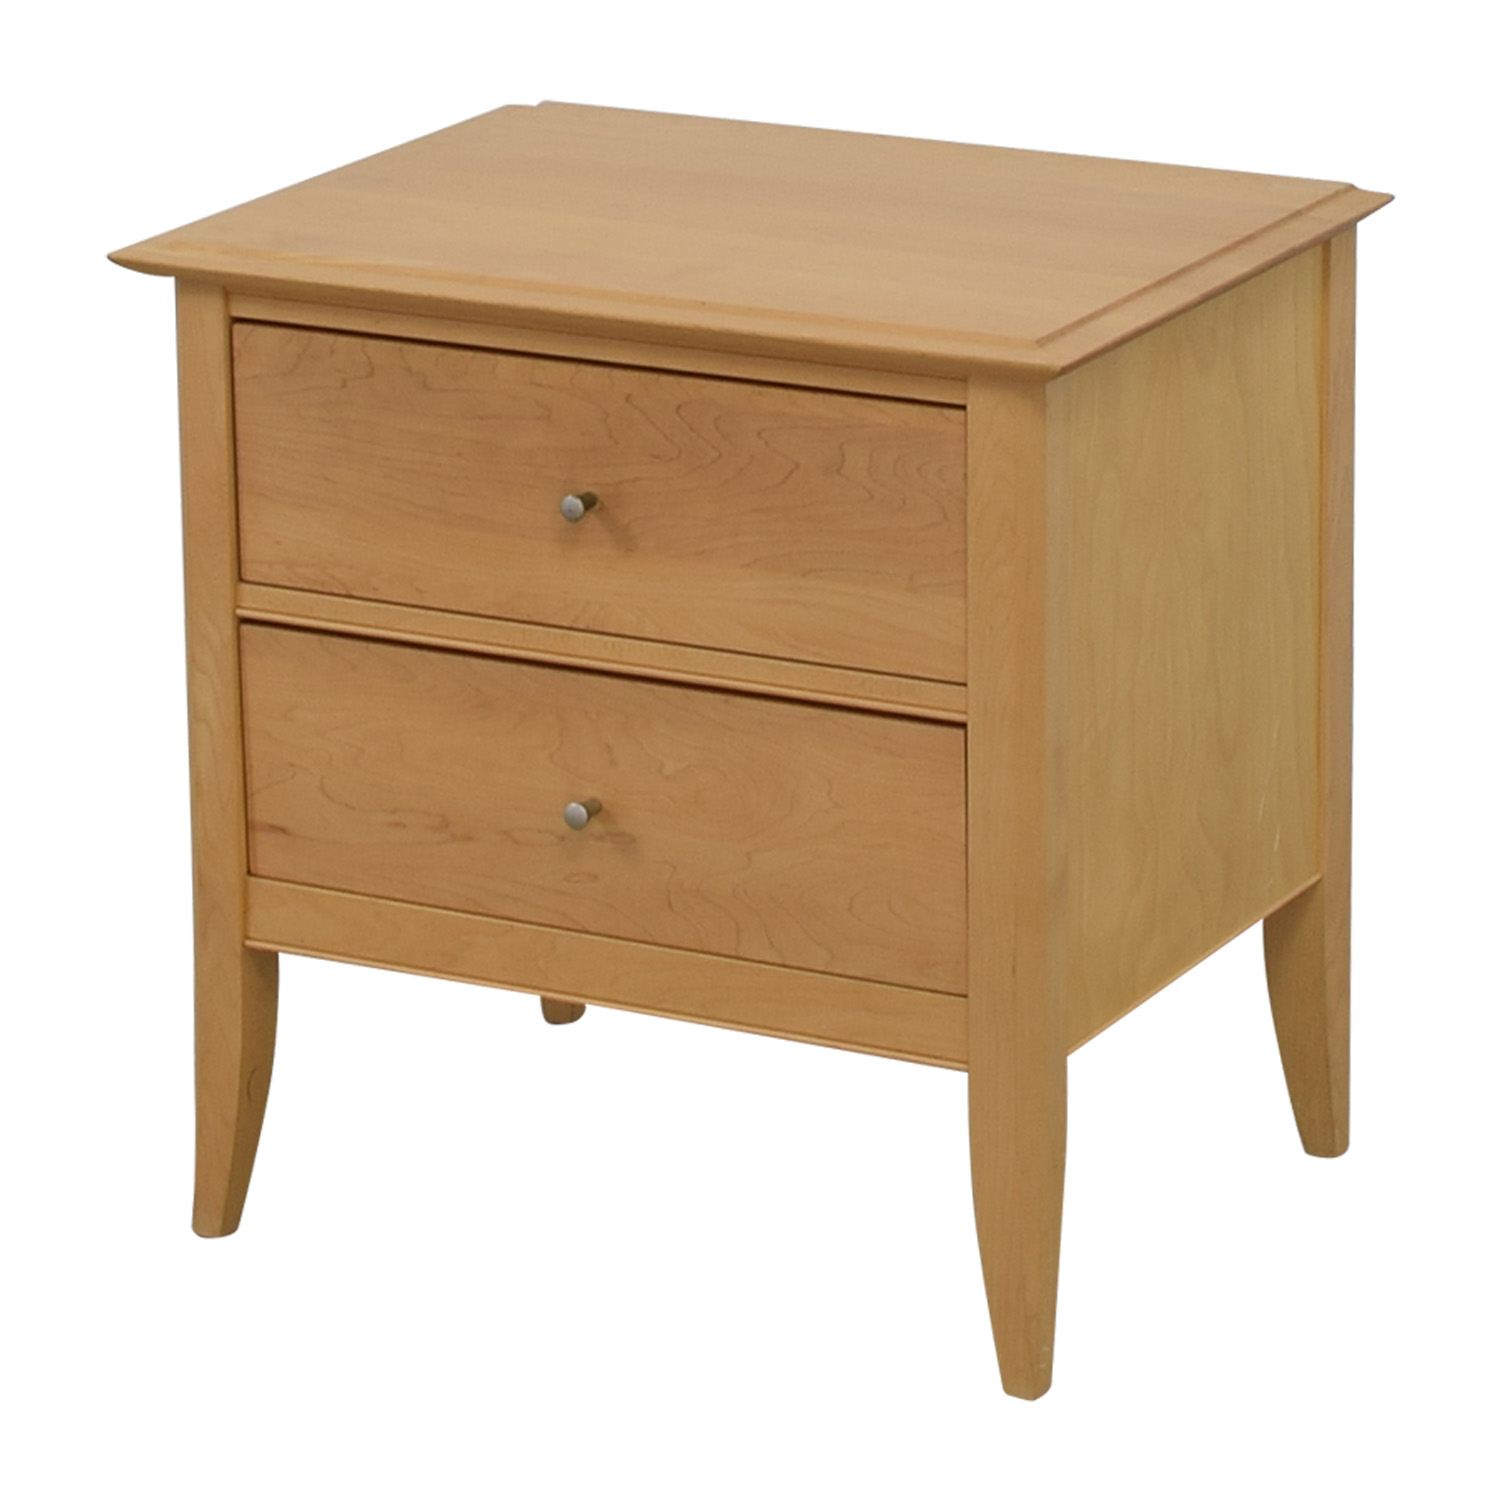 Crate & Barrel Crate & Barrel Natural Two-Drawer Side Table price